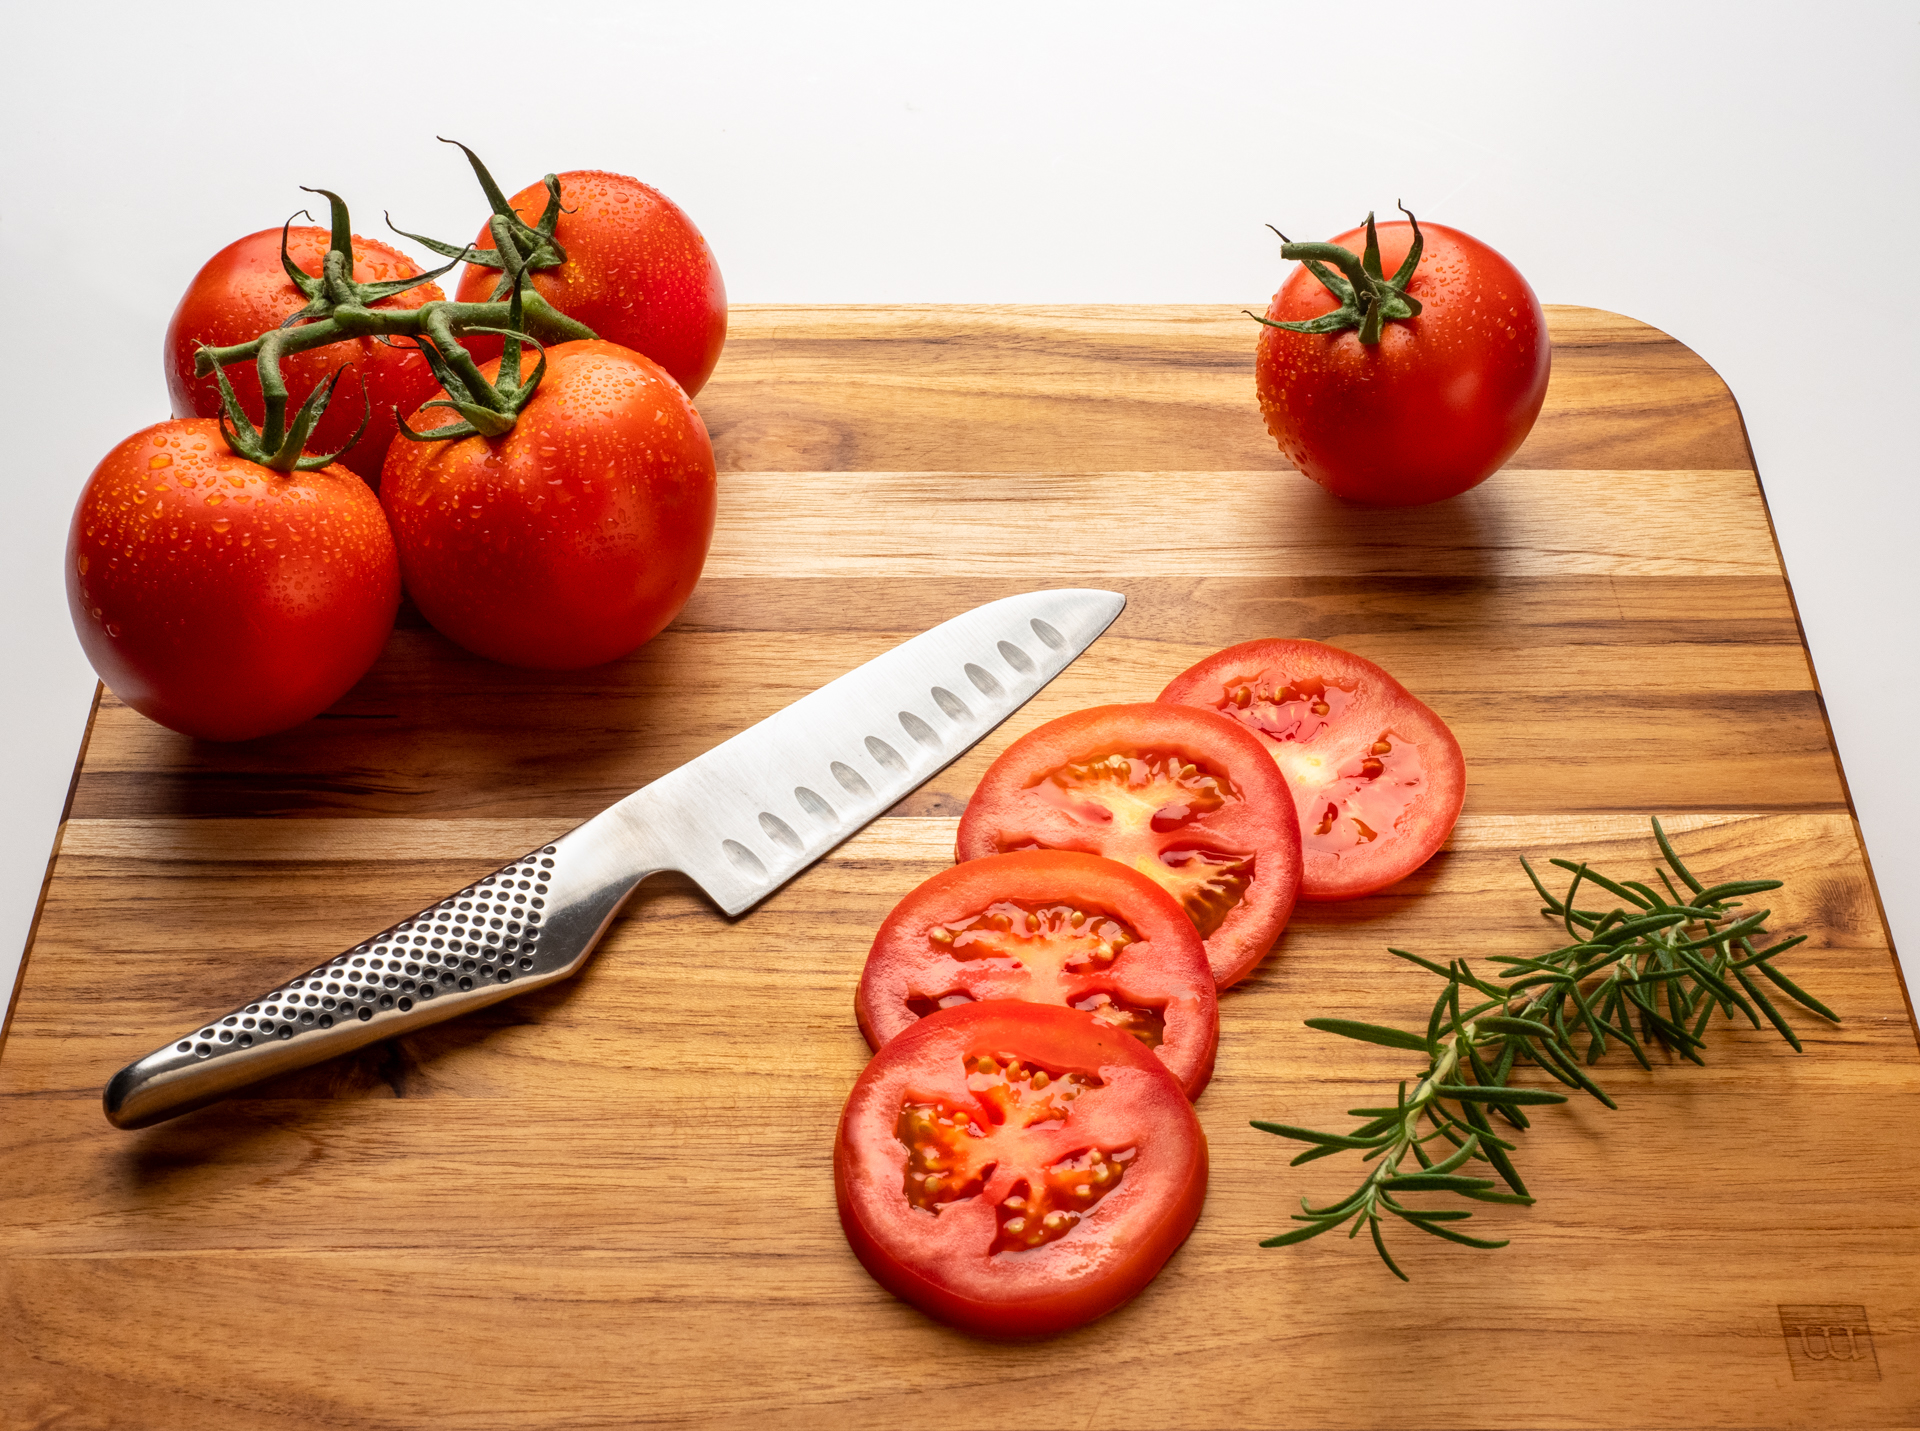 Sliced Tomatoes | High Key Still Life Photograph